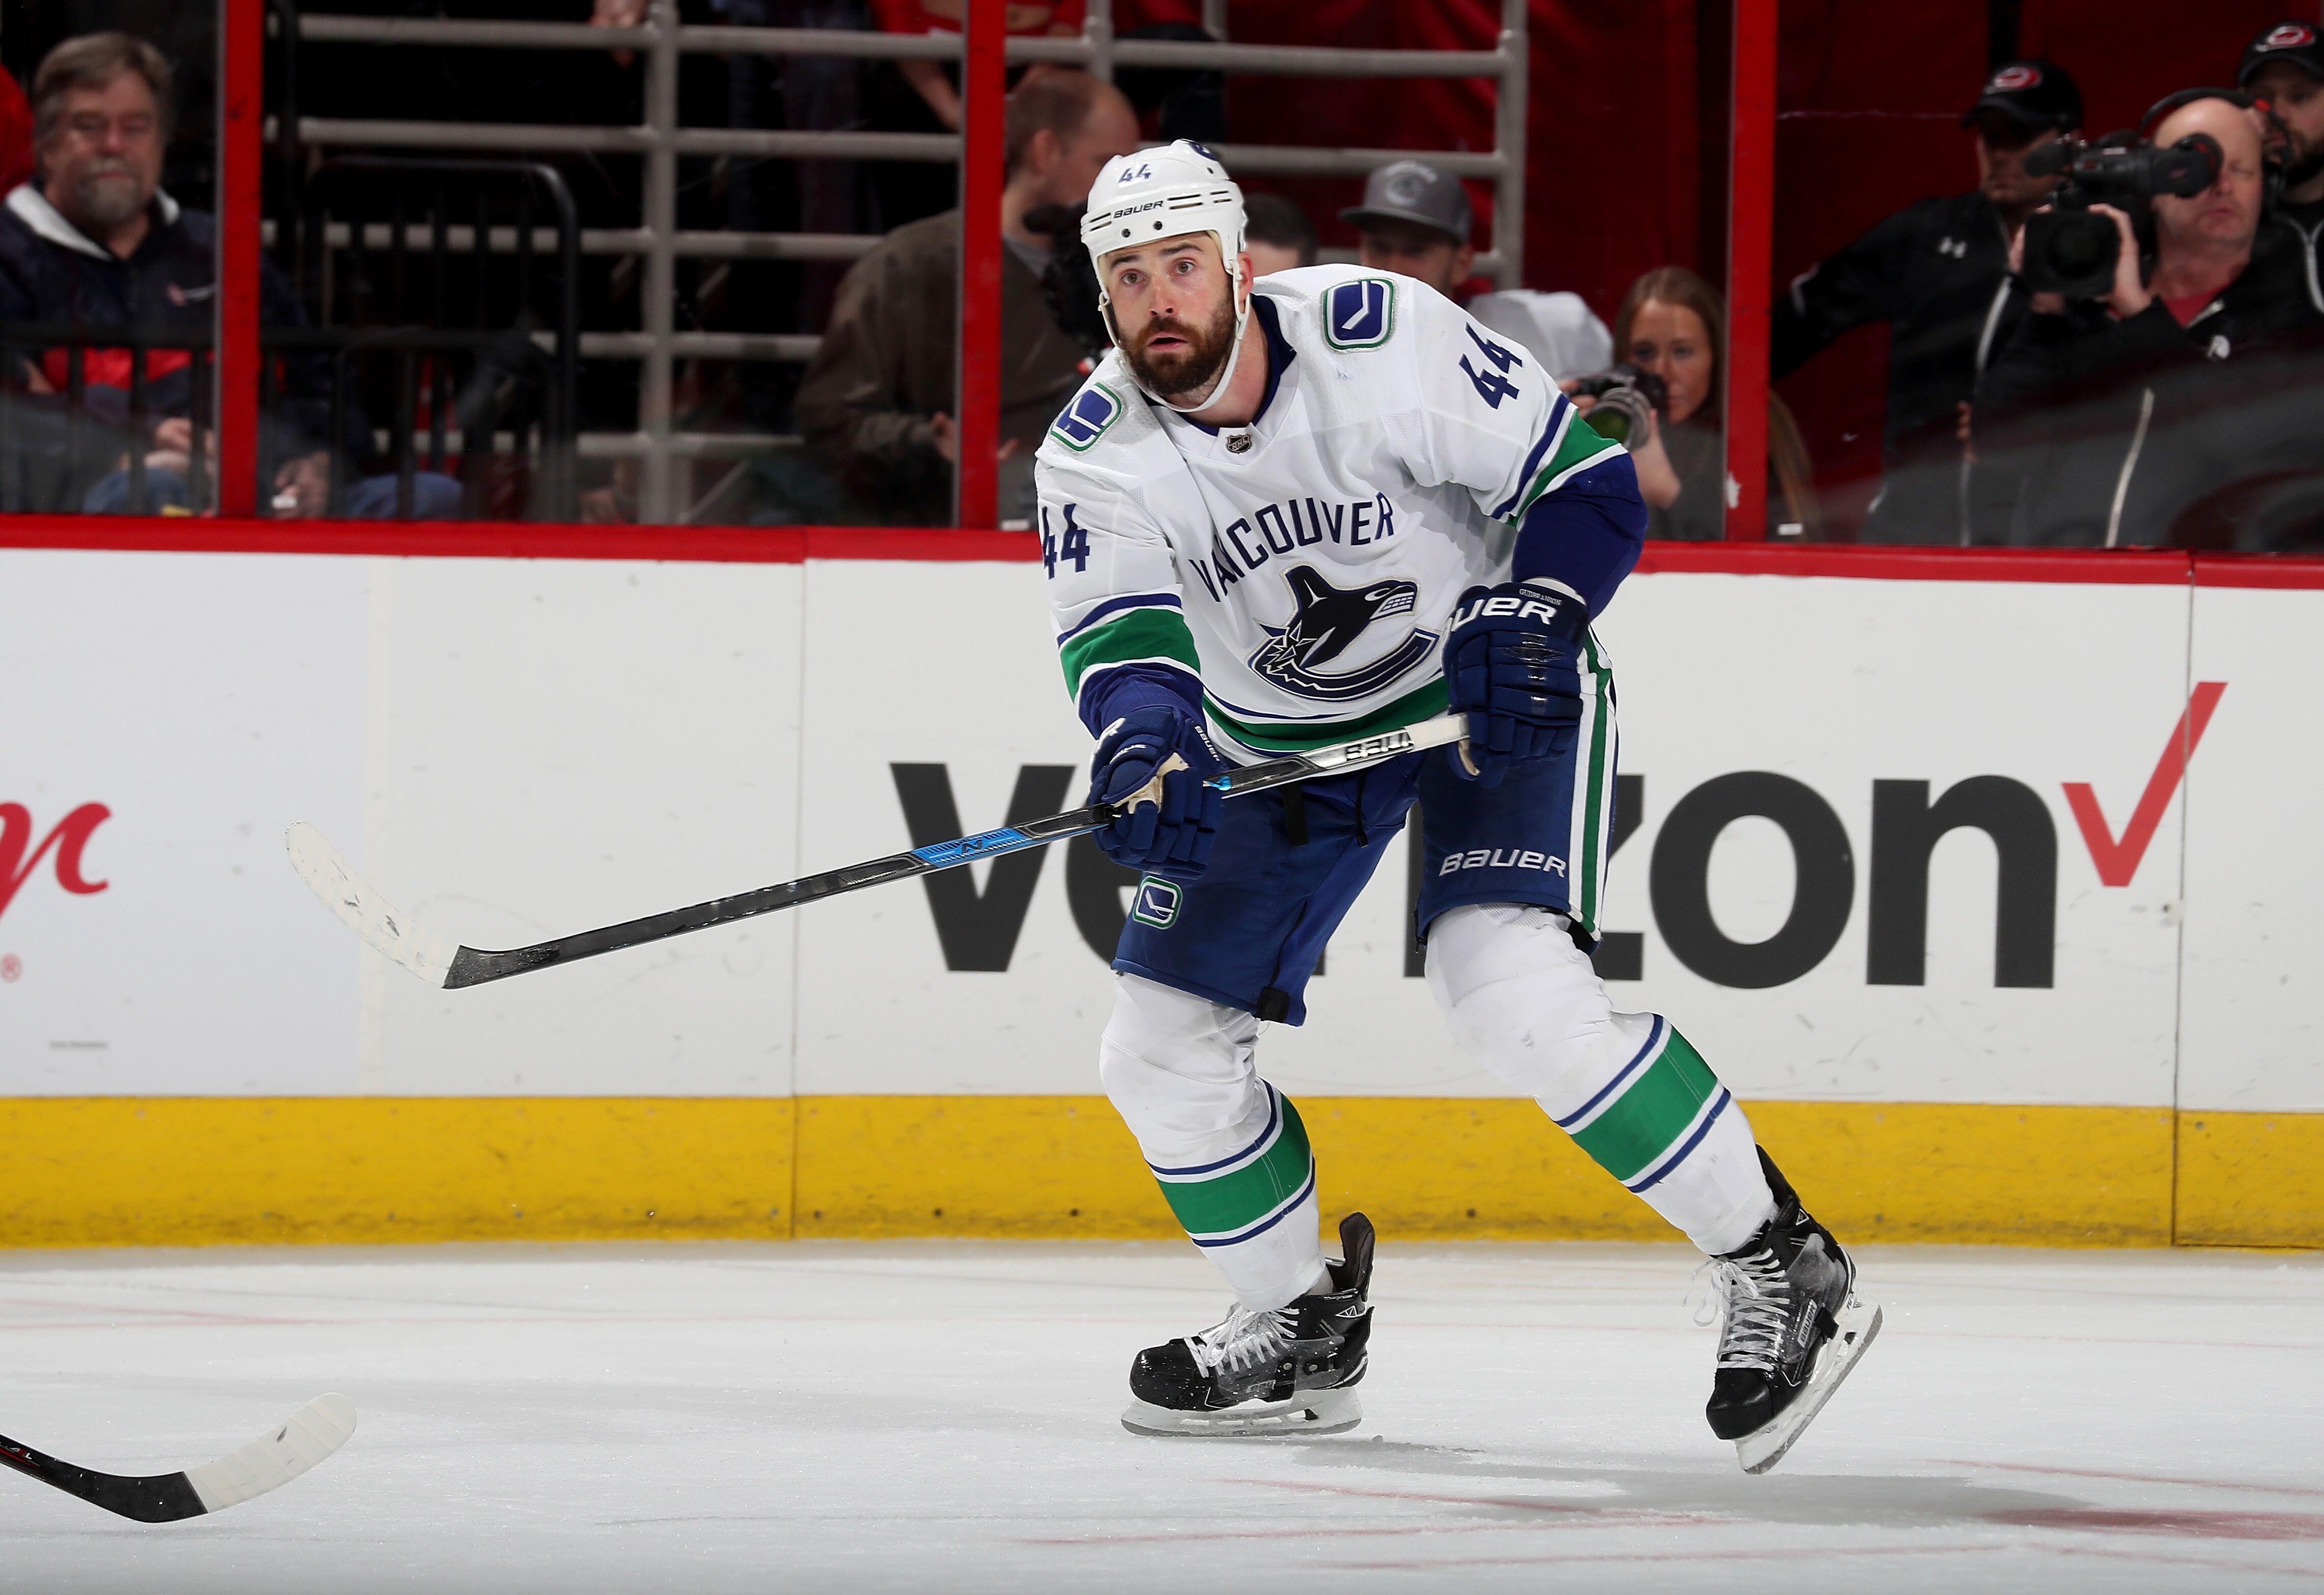 918538282-vancouver-canucks-v-carolina-hurricanes.jpg